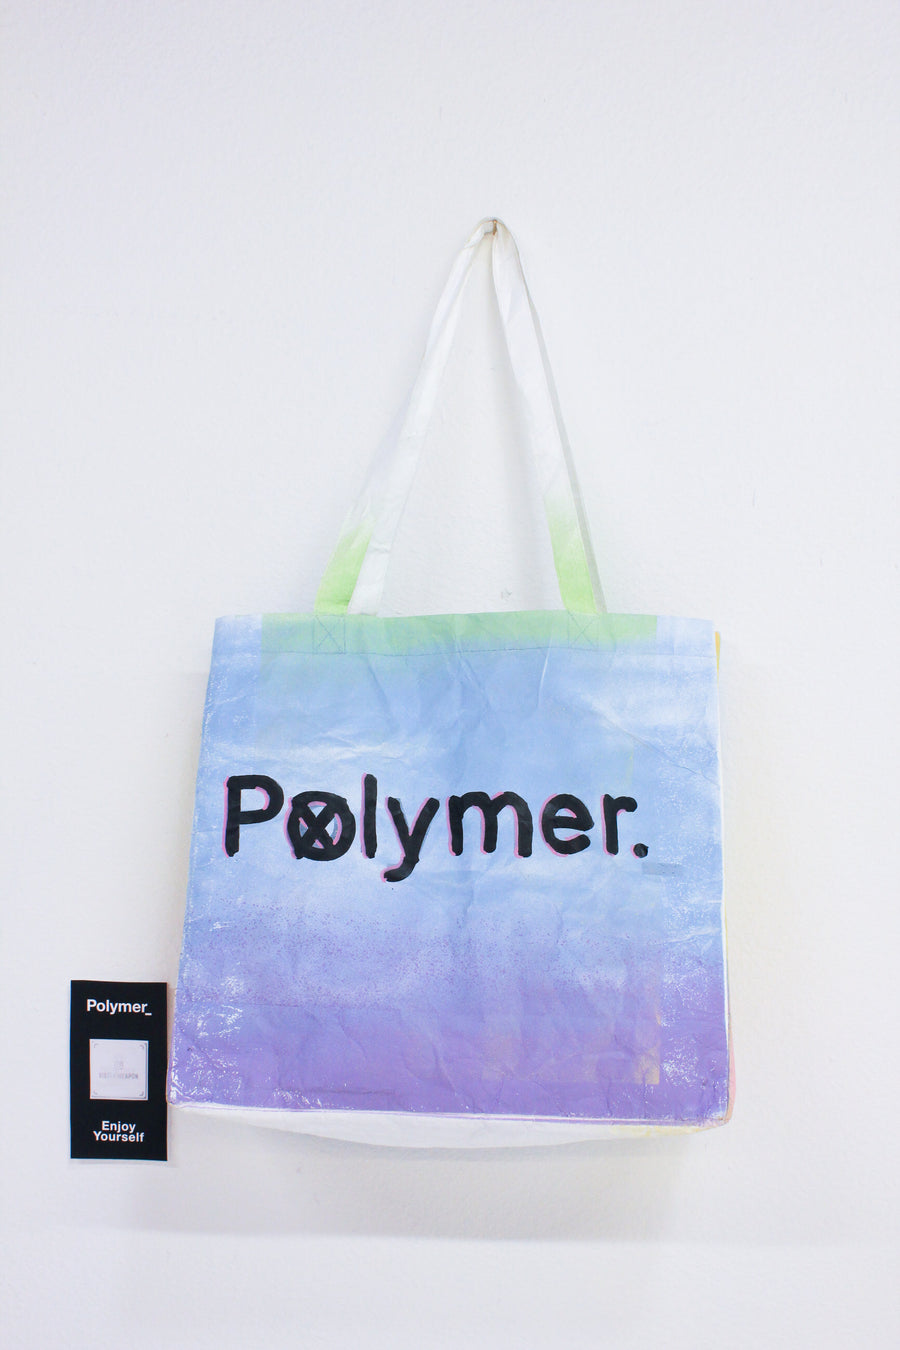 Polymer_ Enjoy Yourself Art Tote by Michael Ziobrowski